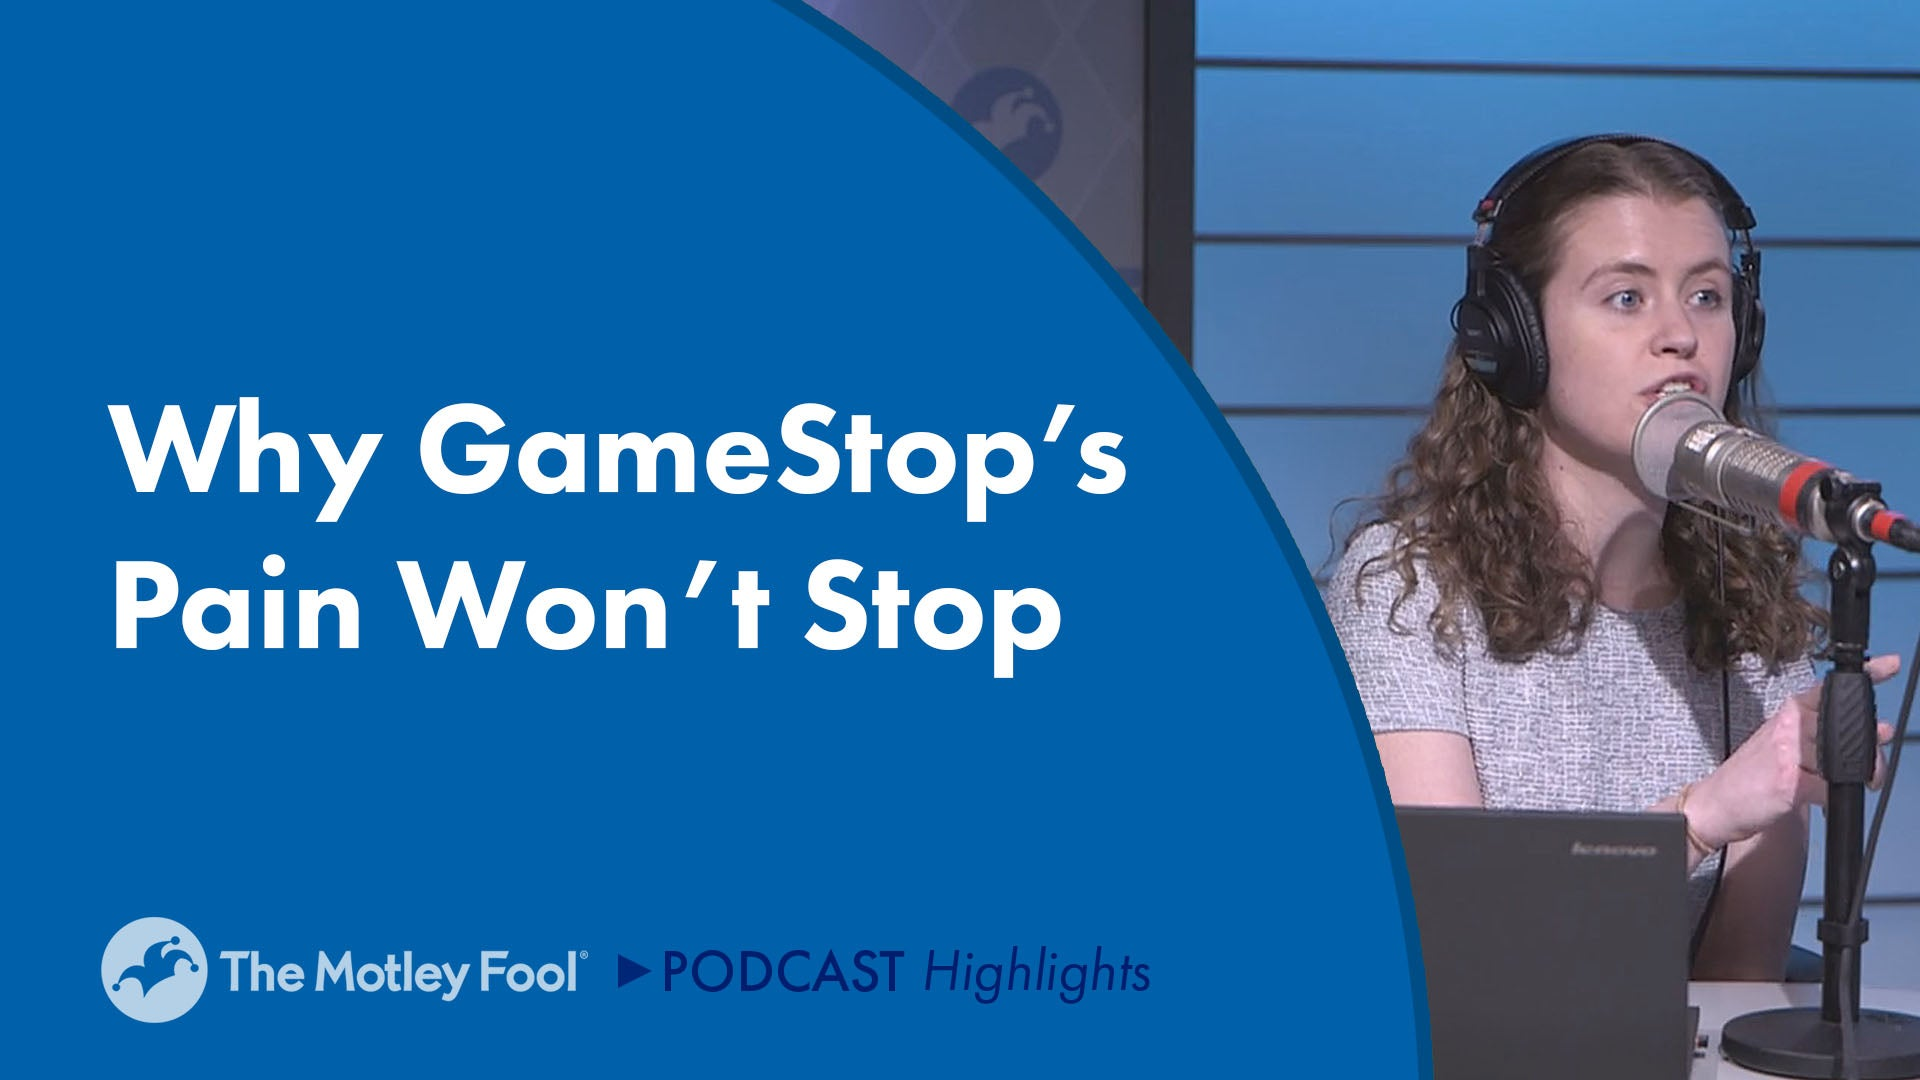 Why GameStop's Pain Won't Stop